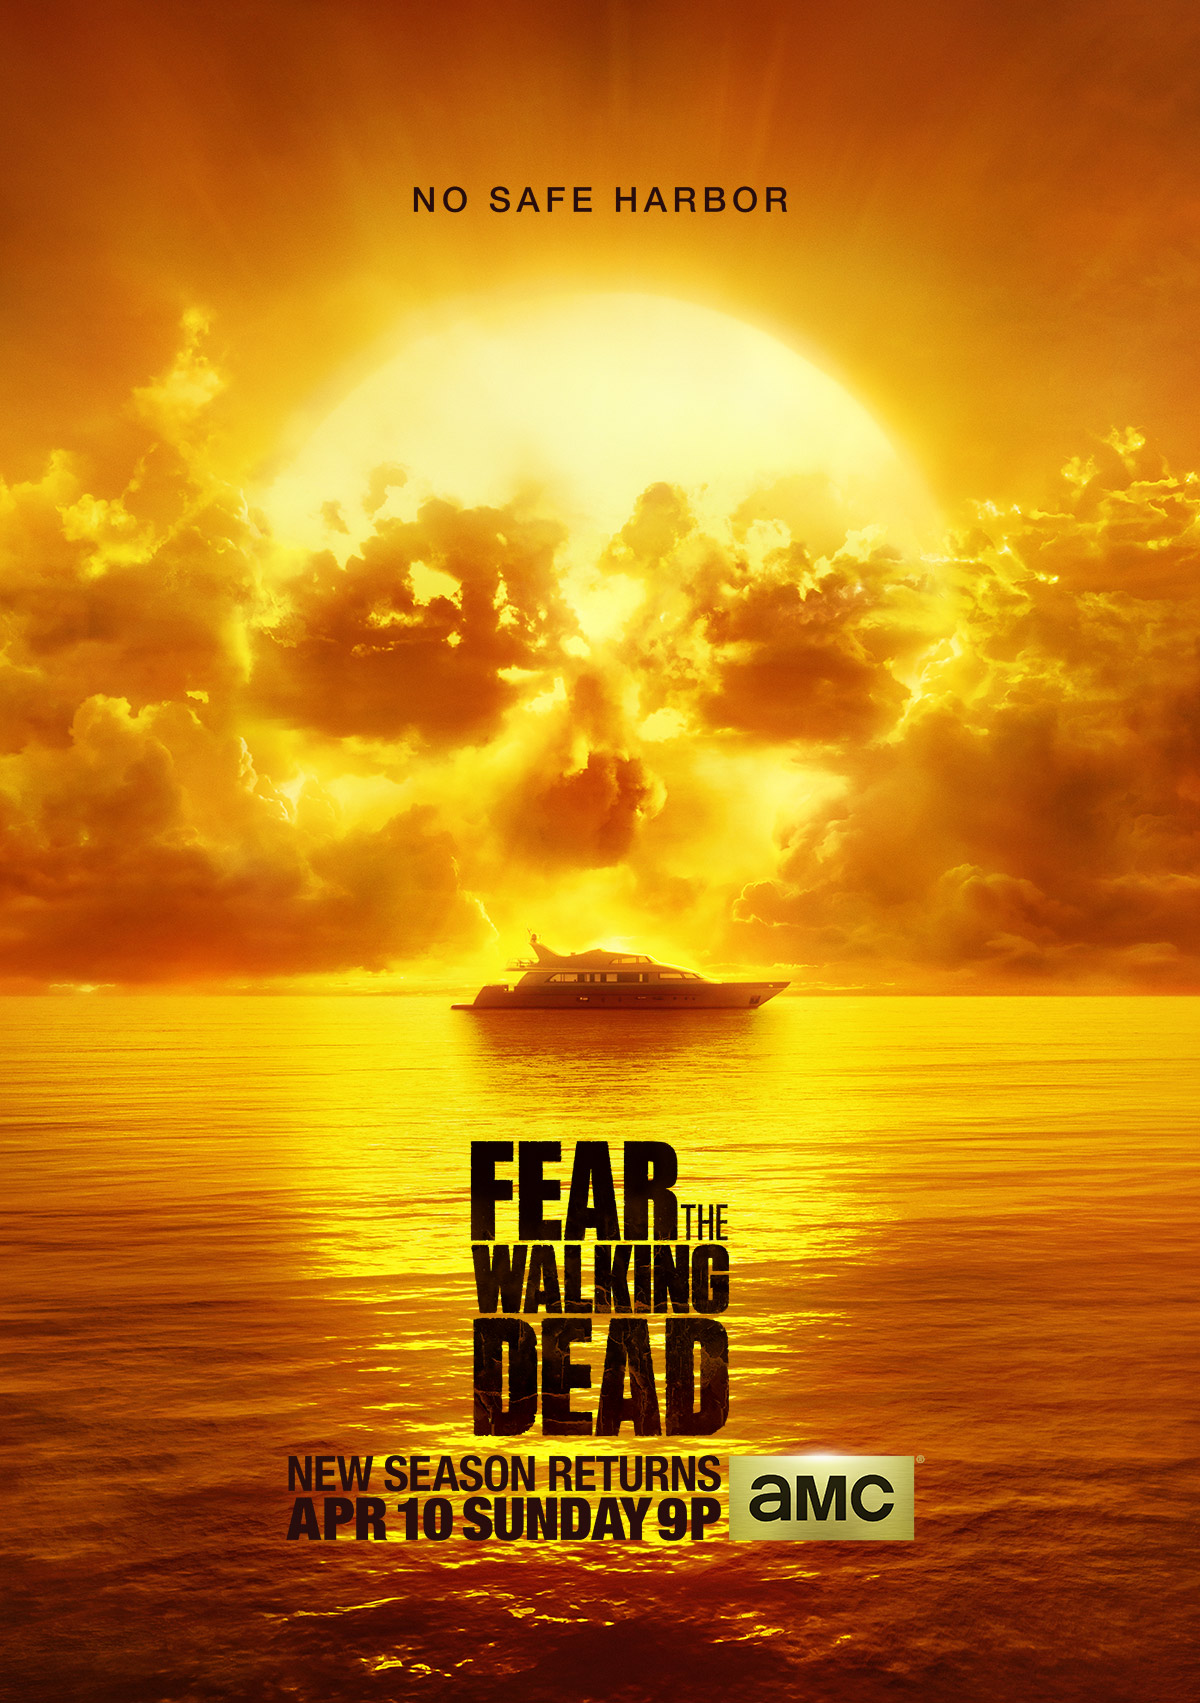 fear-the-walking-dead-season-2-key-art-poster-1200x1703